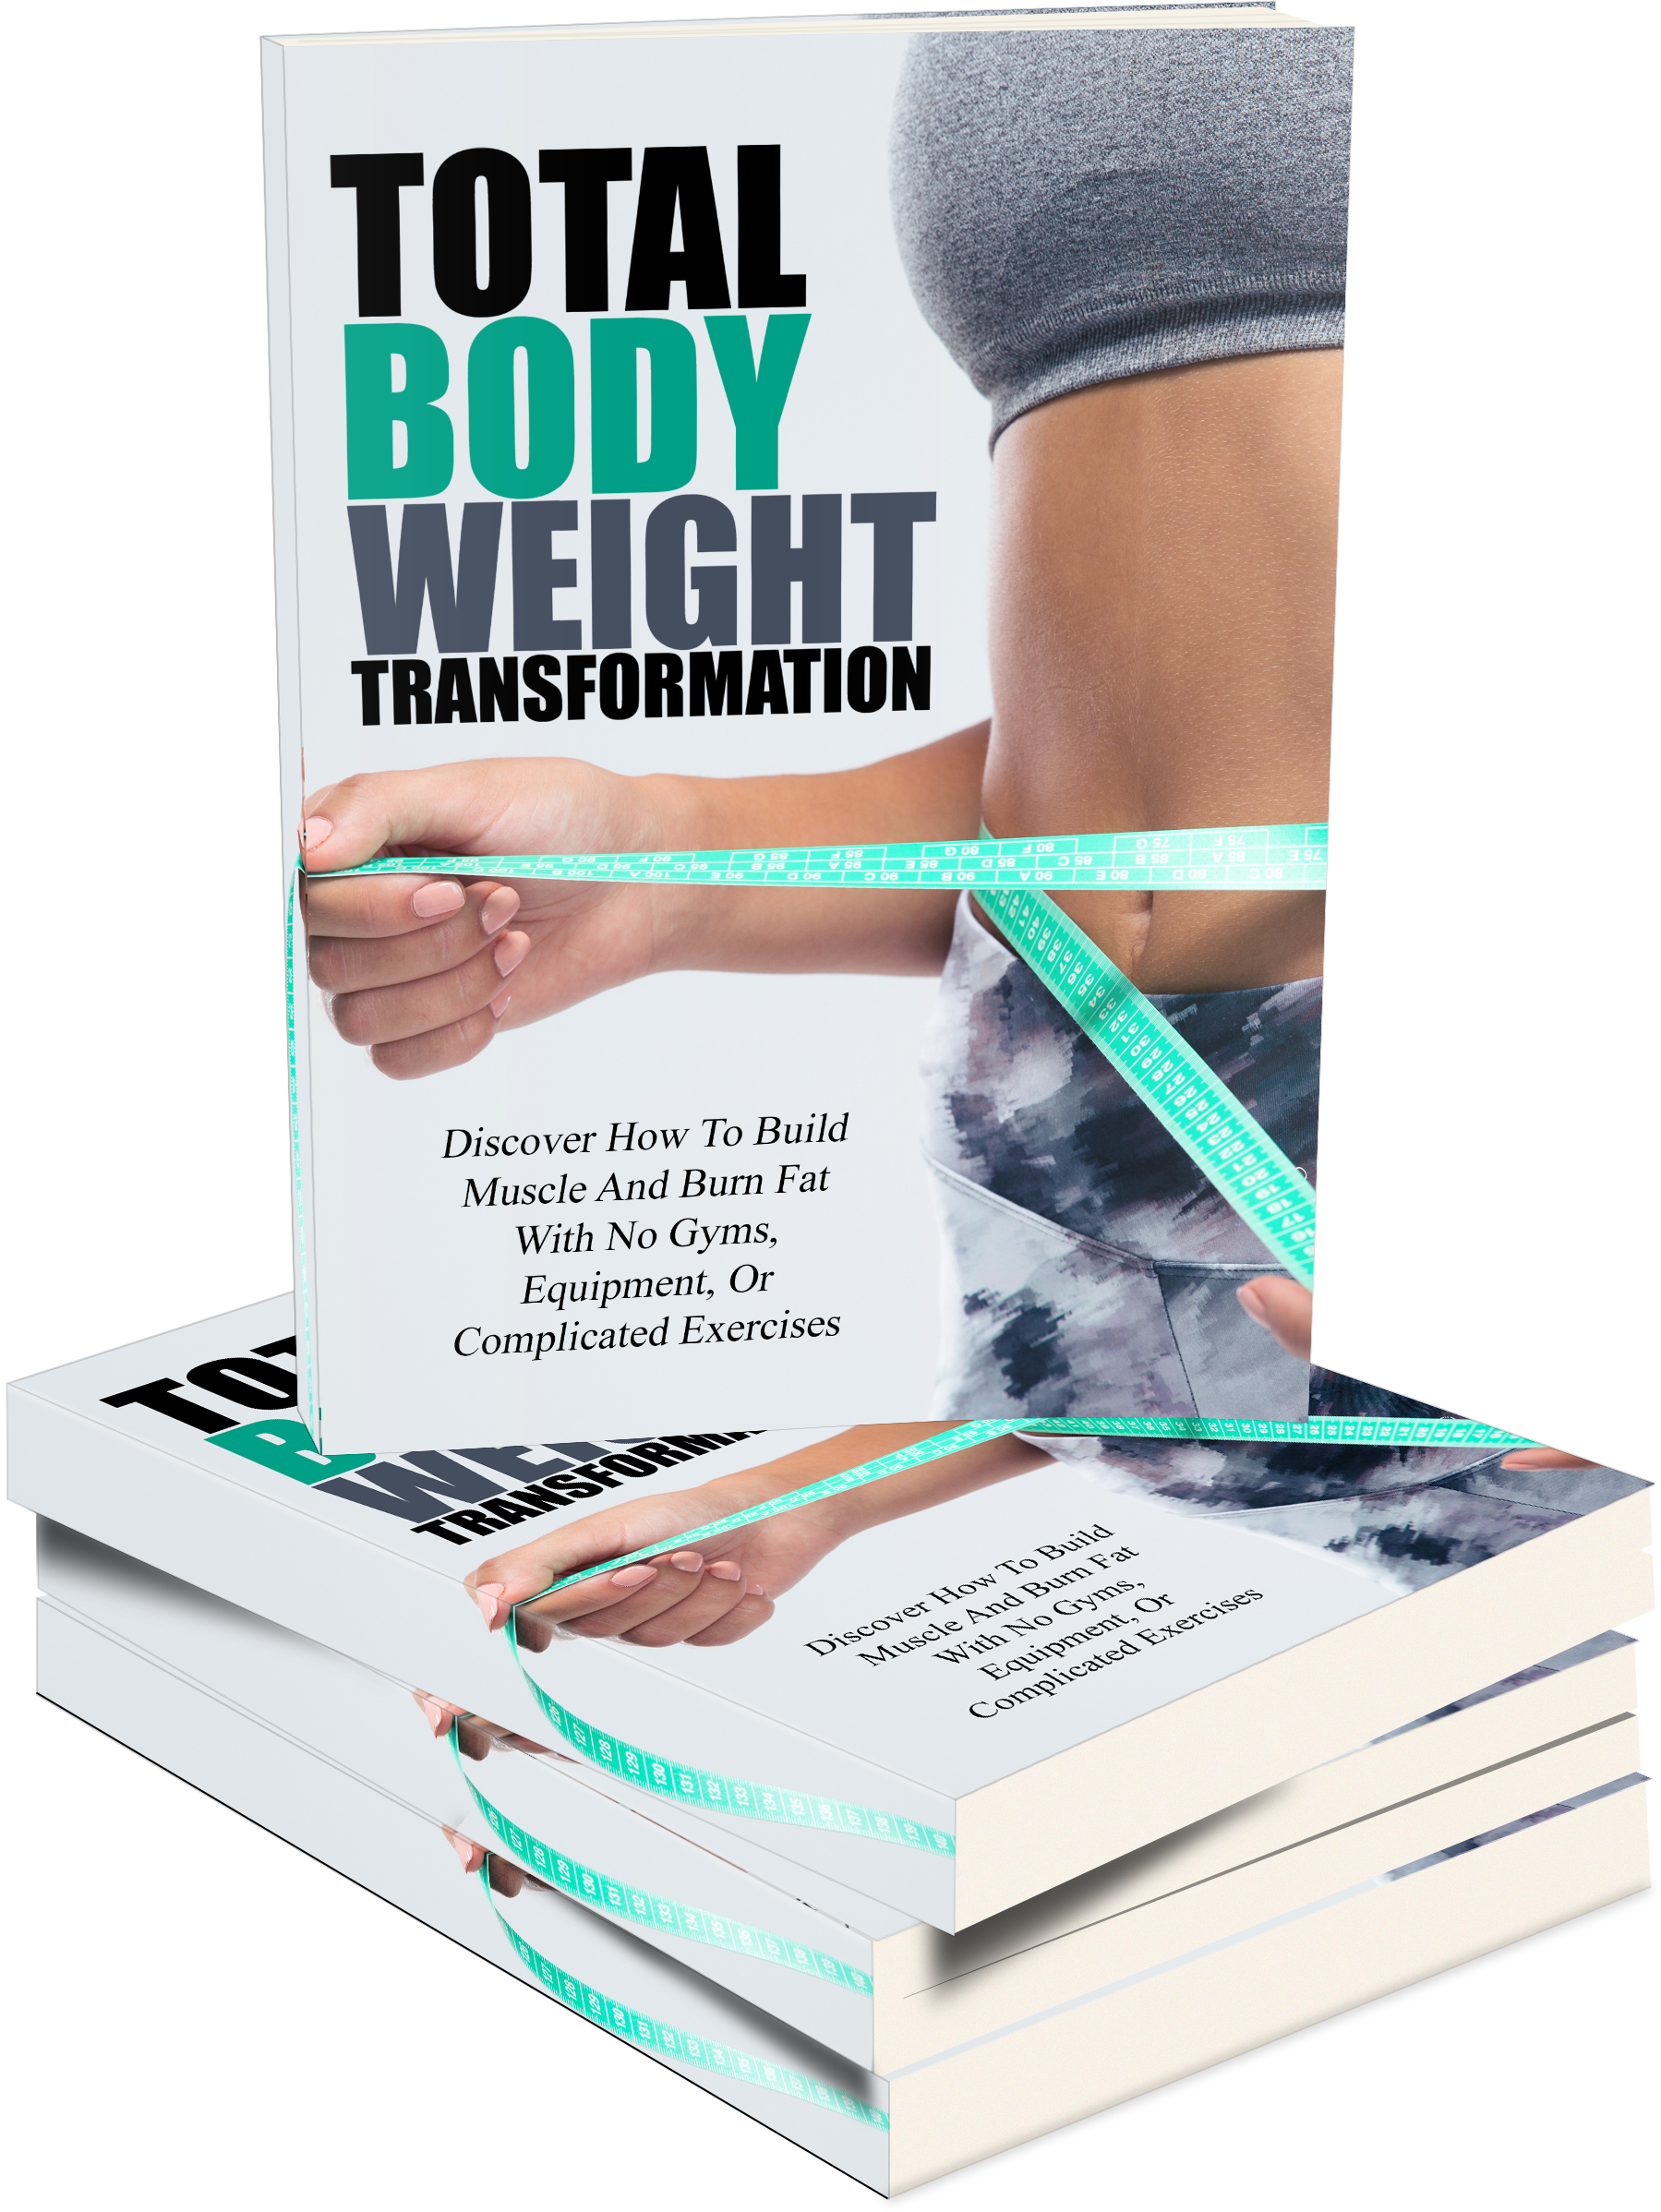 Diet ebooks plr private label rights master resale rights to this product as well fandeluxe Gallery